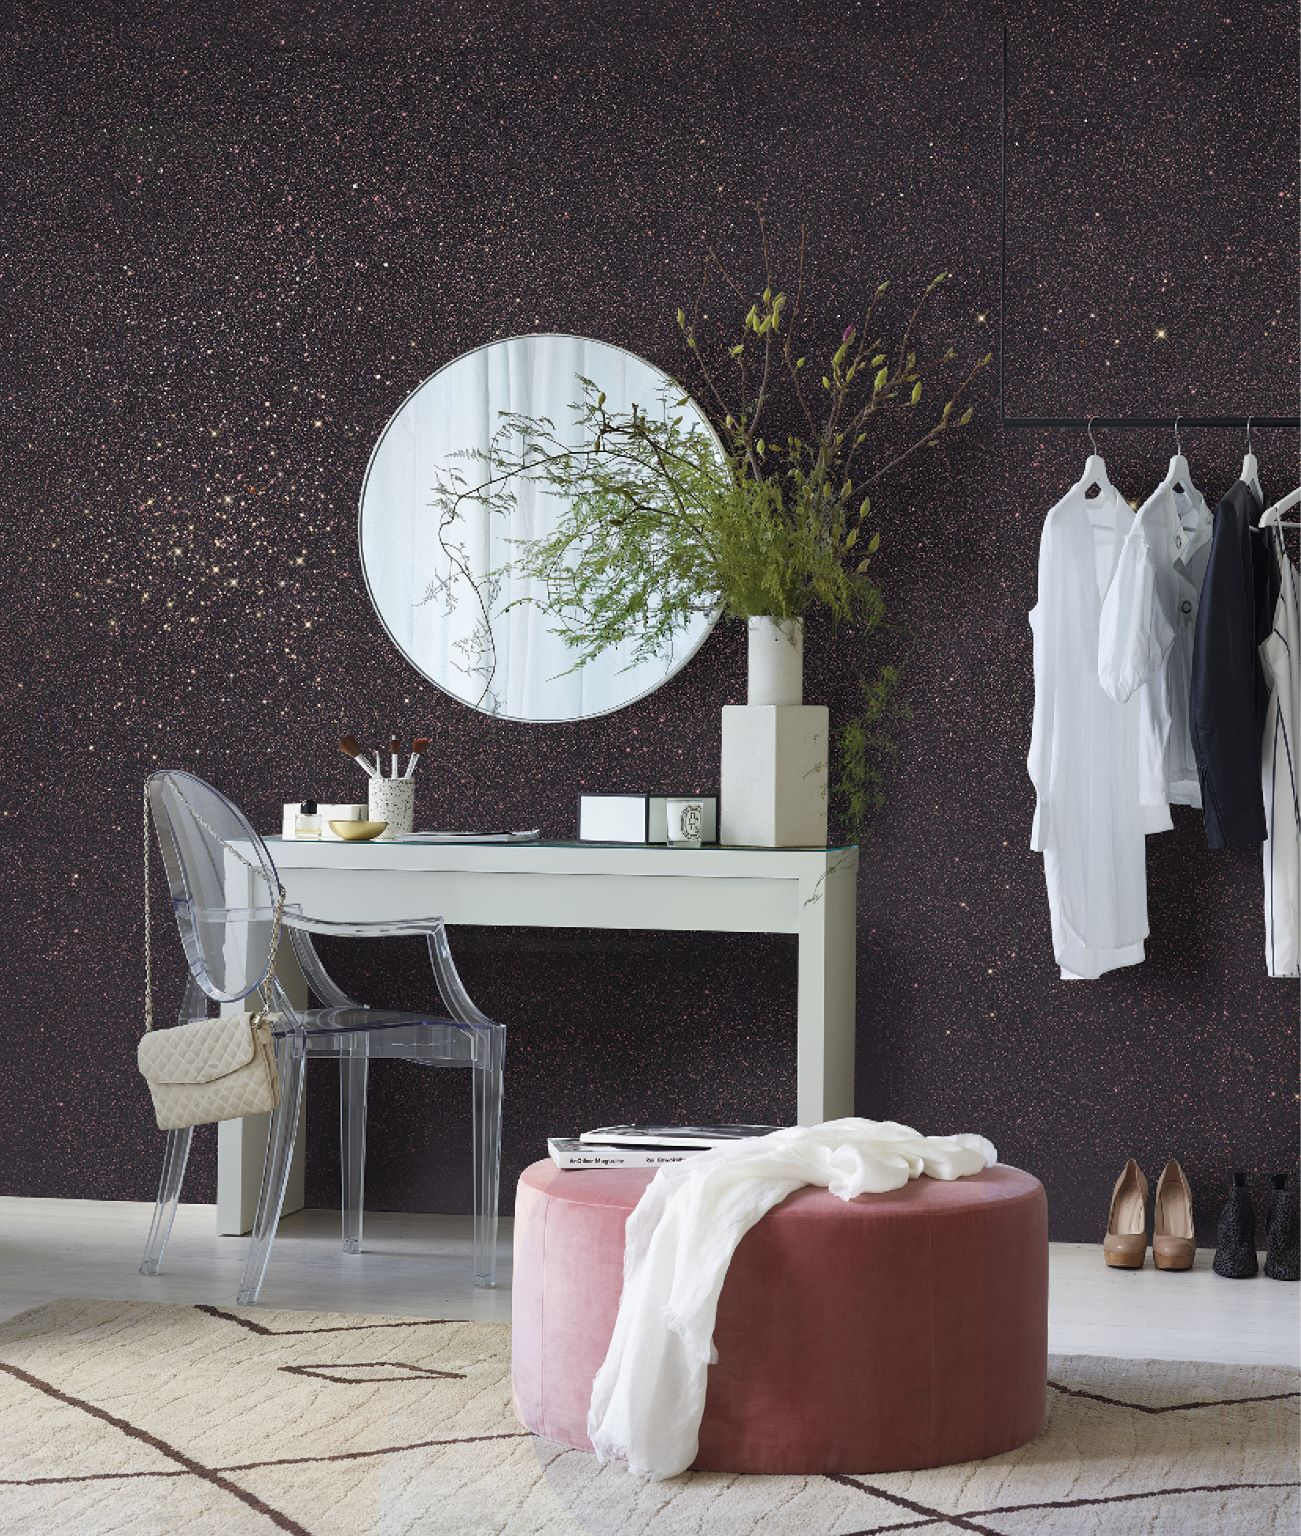 Quick decor updates with Dulux Design Effects